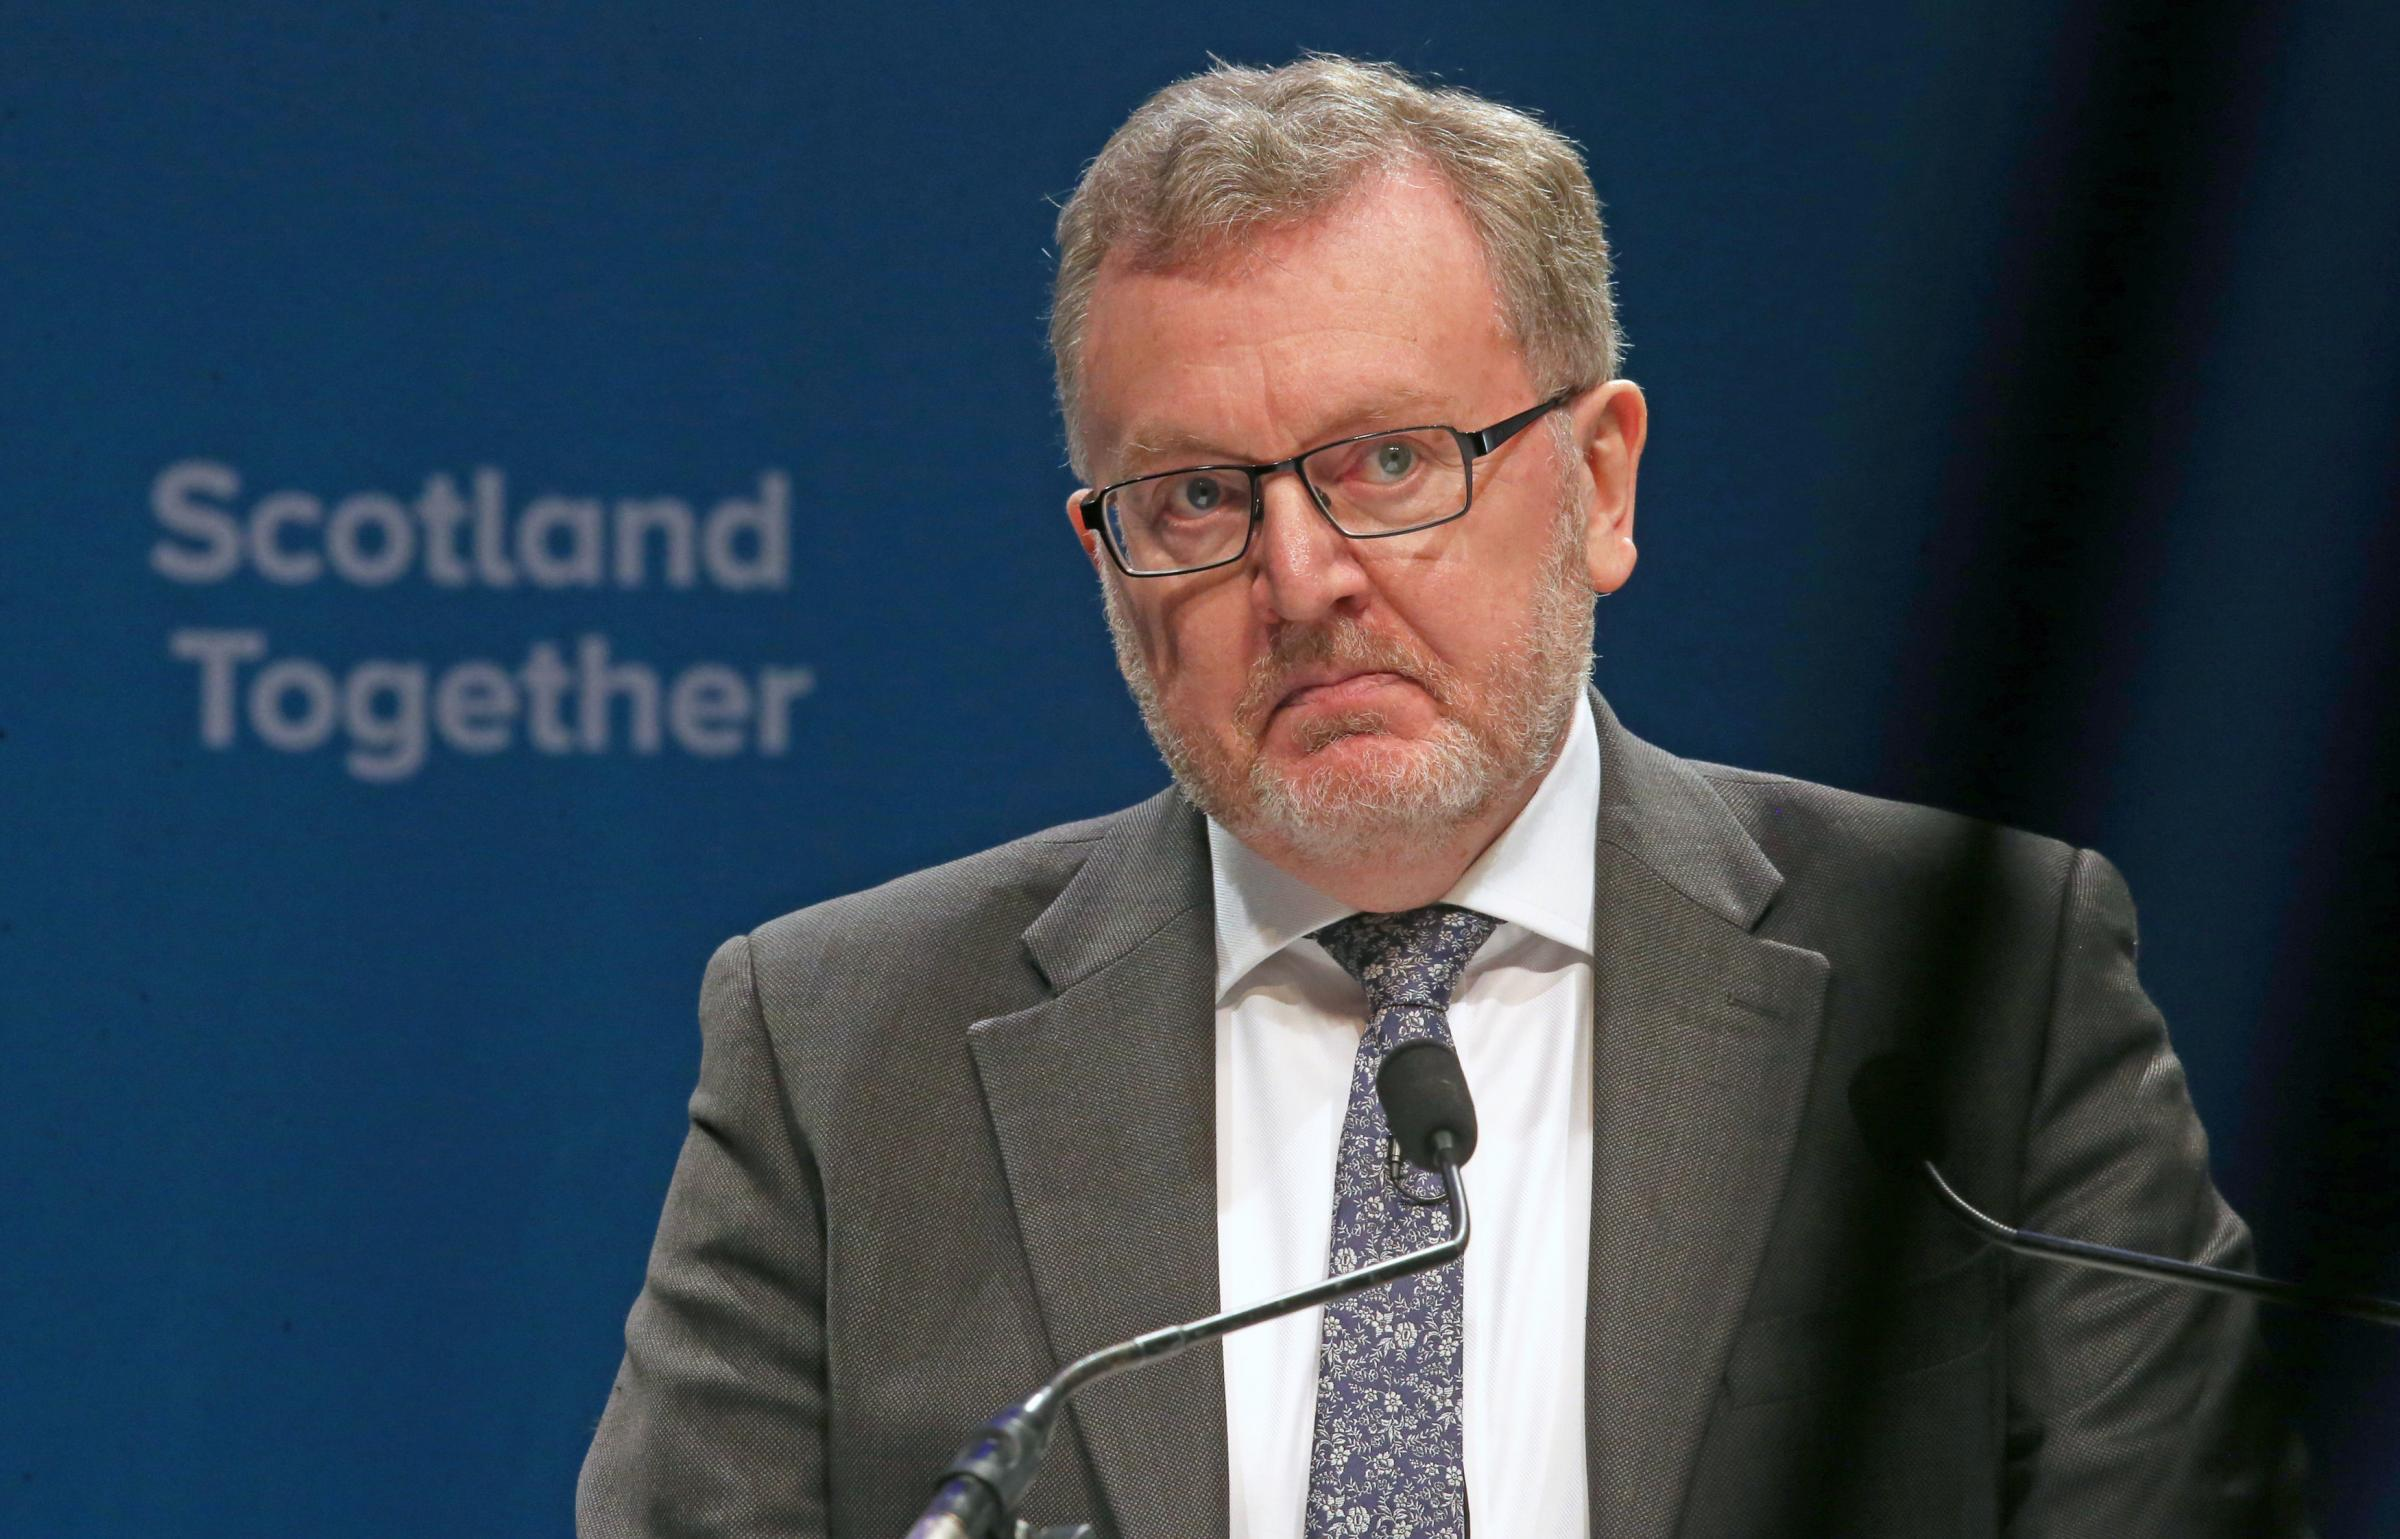 David Mundell isn't exactly known for telling the truth ...